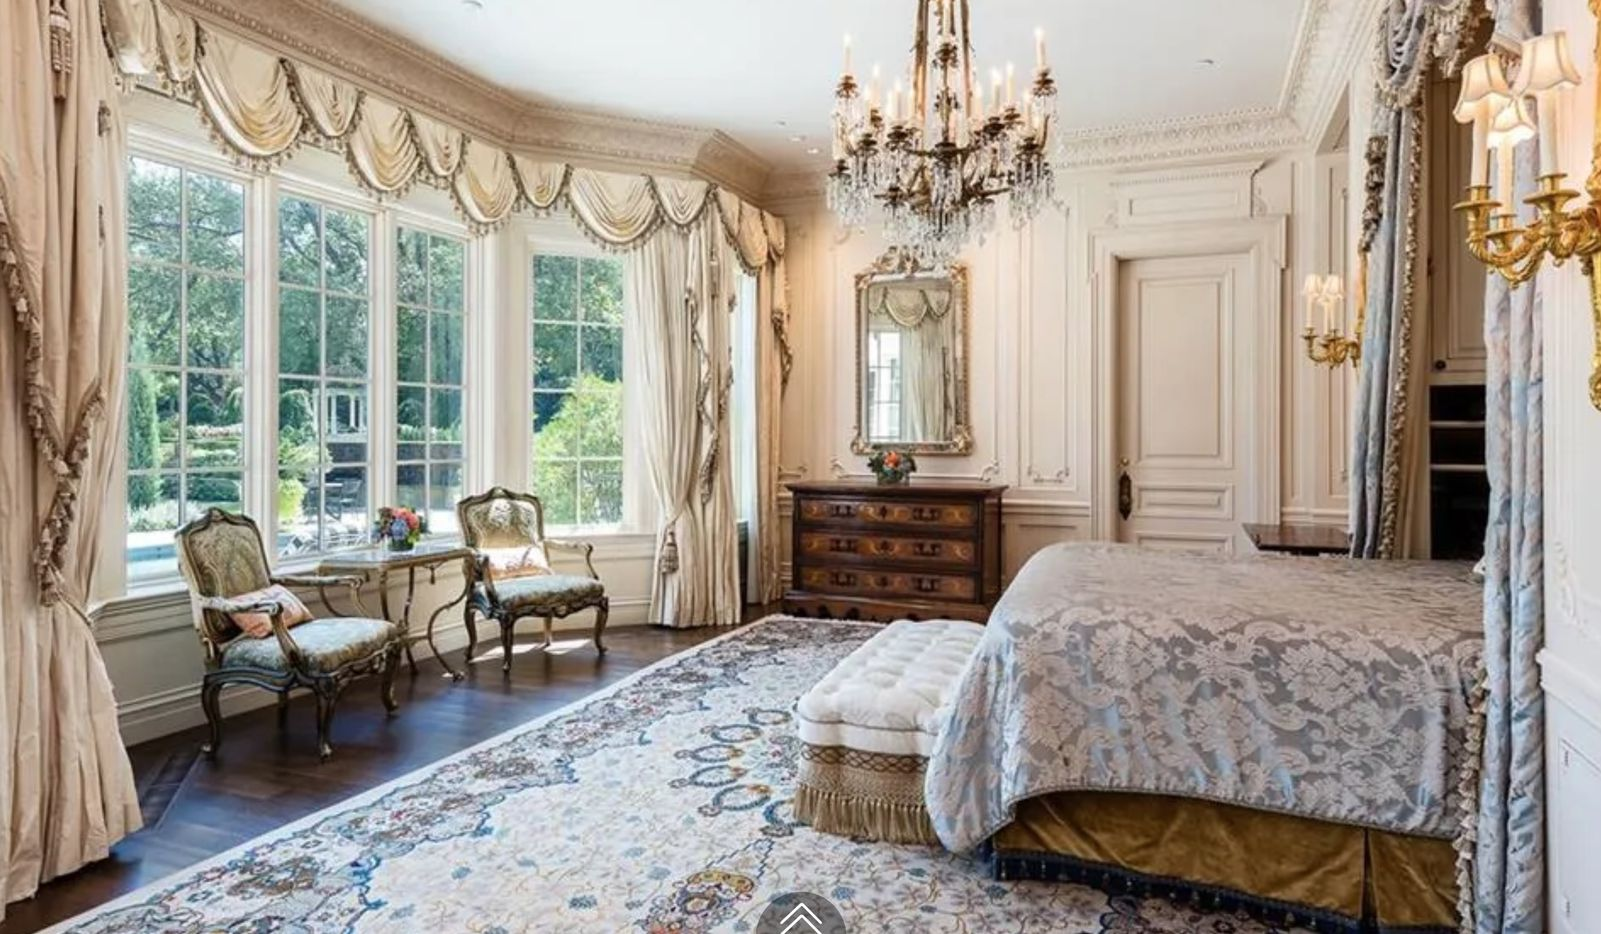 The French style house has five bedrooms.